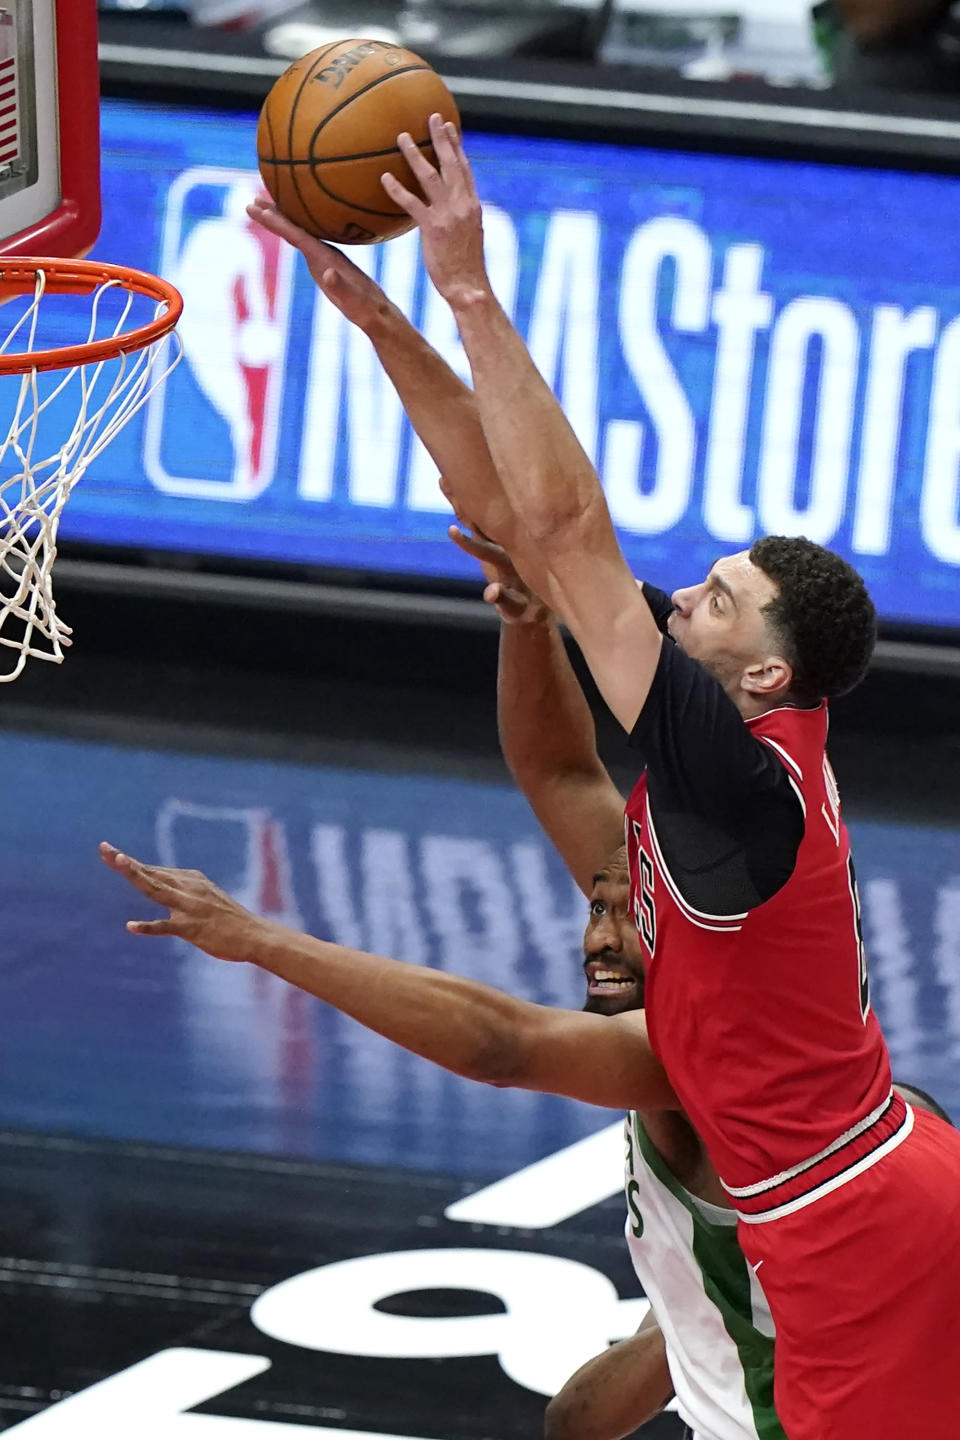 Chicago Bulls guard Zach LaVine, right, shoots against Boston Celtics forward Jabari Parker during the first half of an NBA basketball game in Chicago, Friday, May 7, 2021. (AP Photo/Nam Y. Huh)